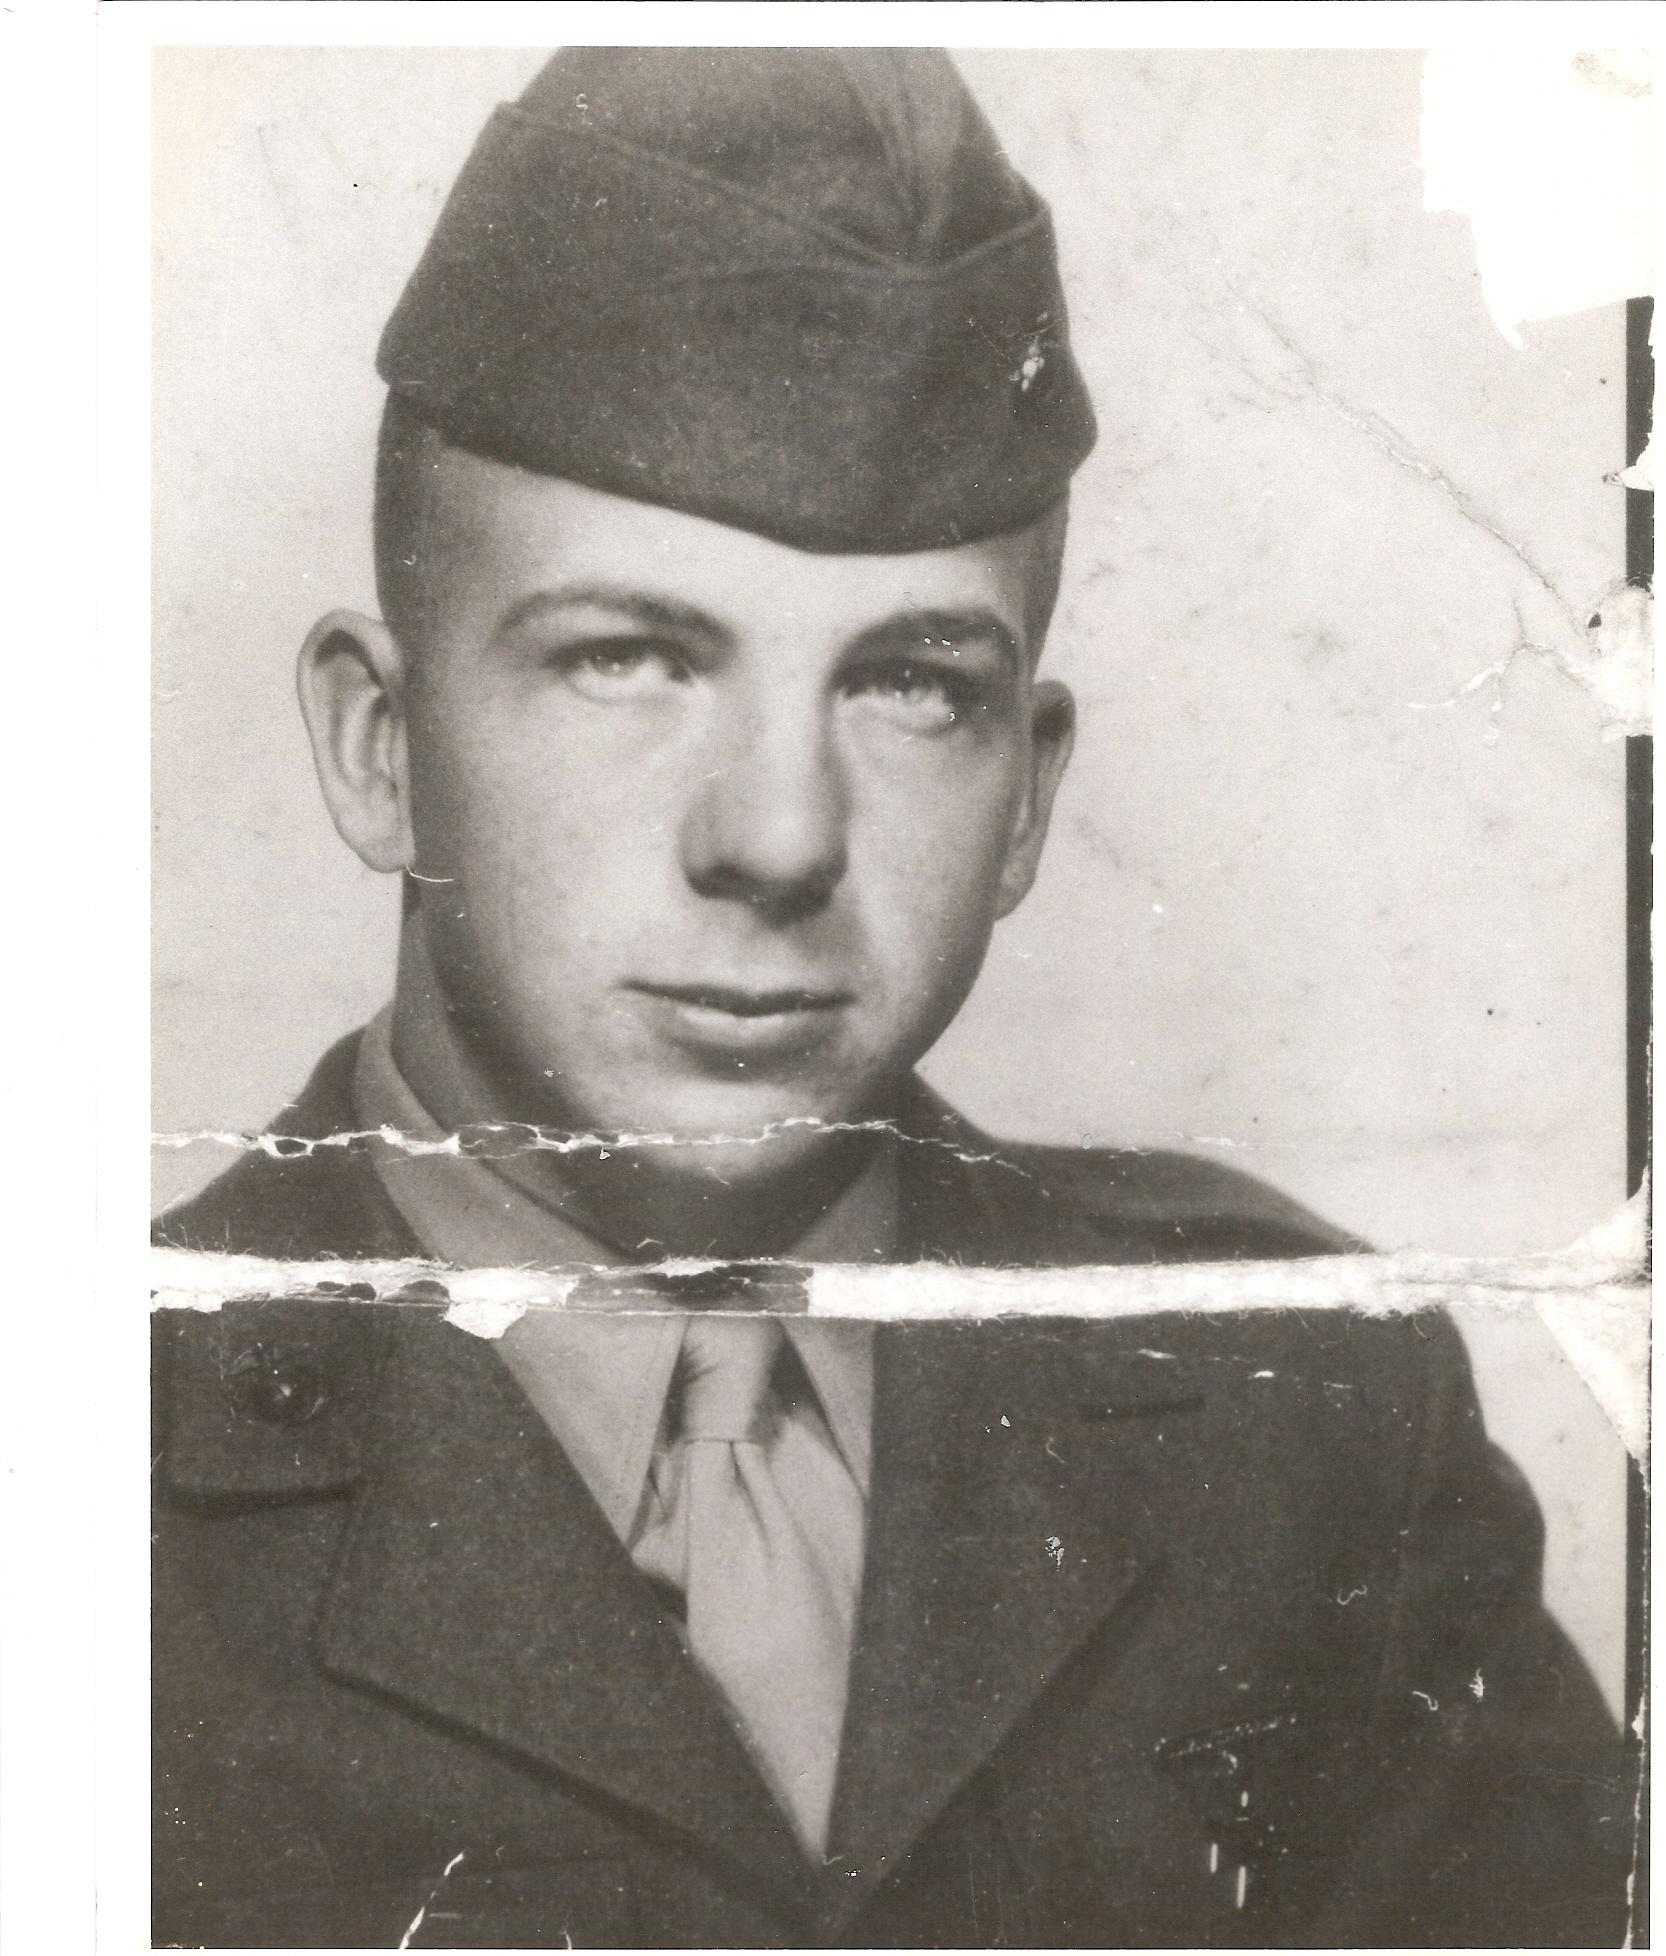 Lee Harvey Oswald's First Intelligence Assignment